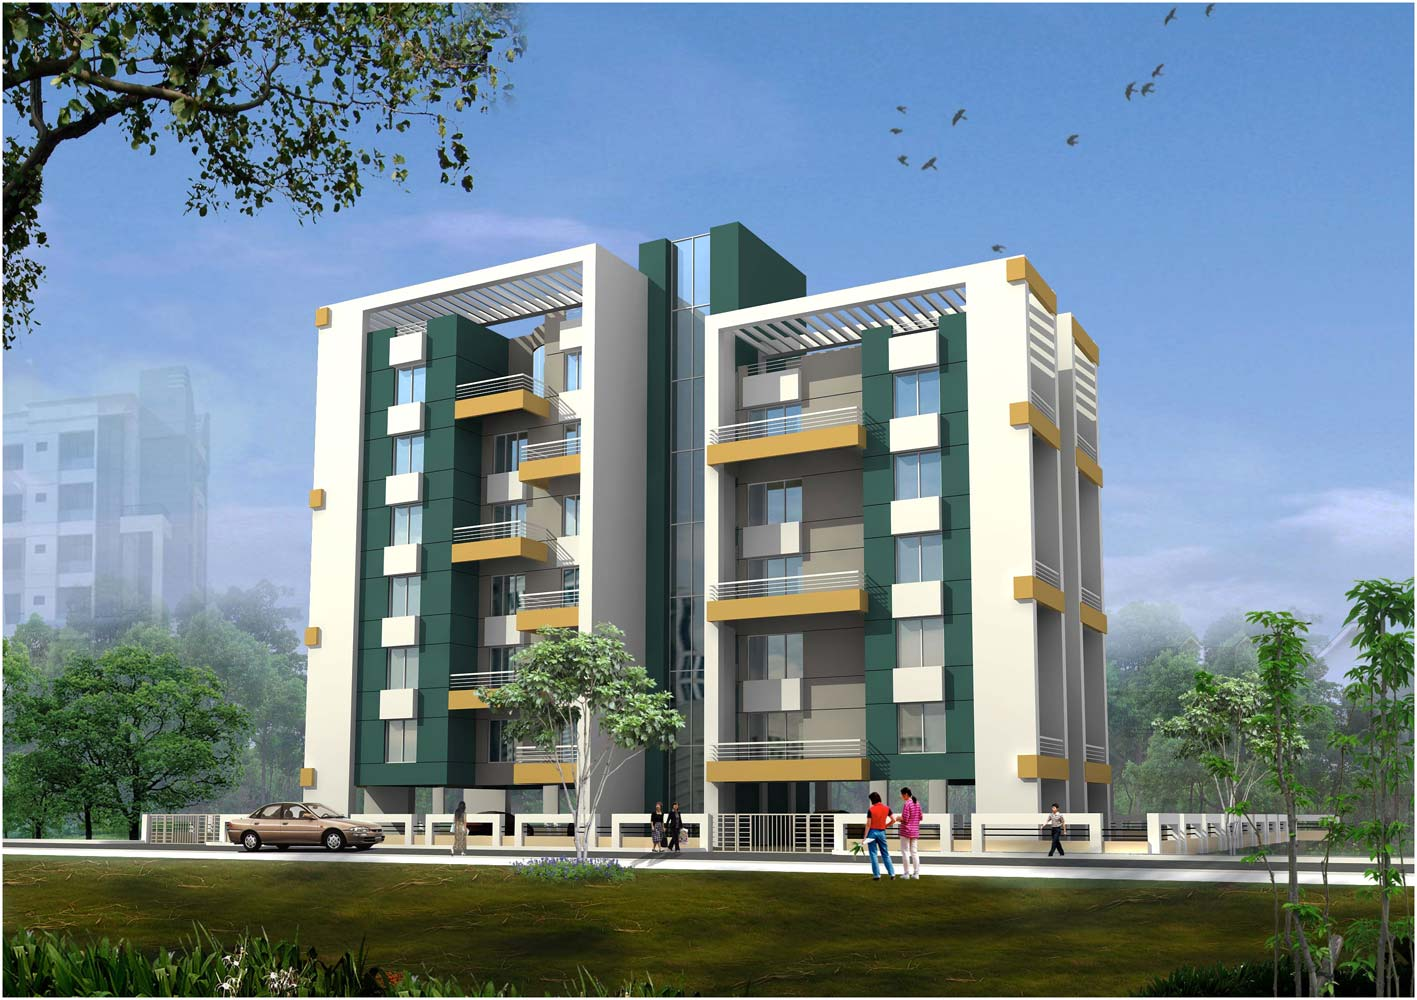 Manas dreams pune maharashtra india residential for Apartment plans in india